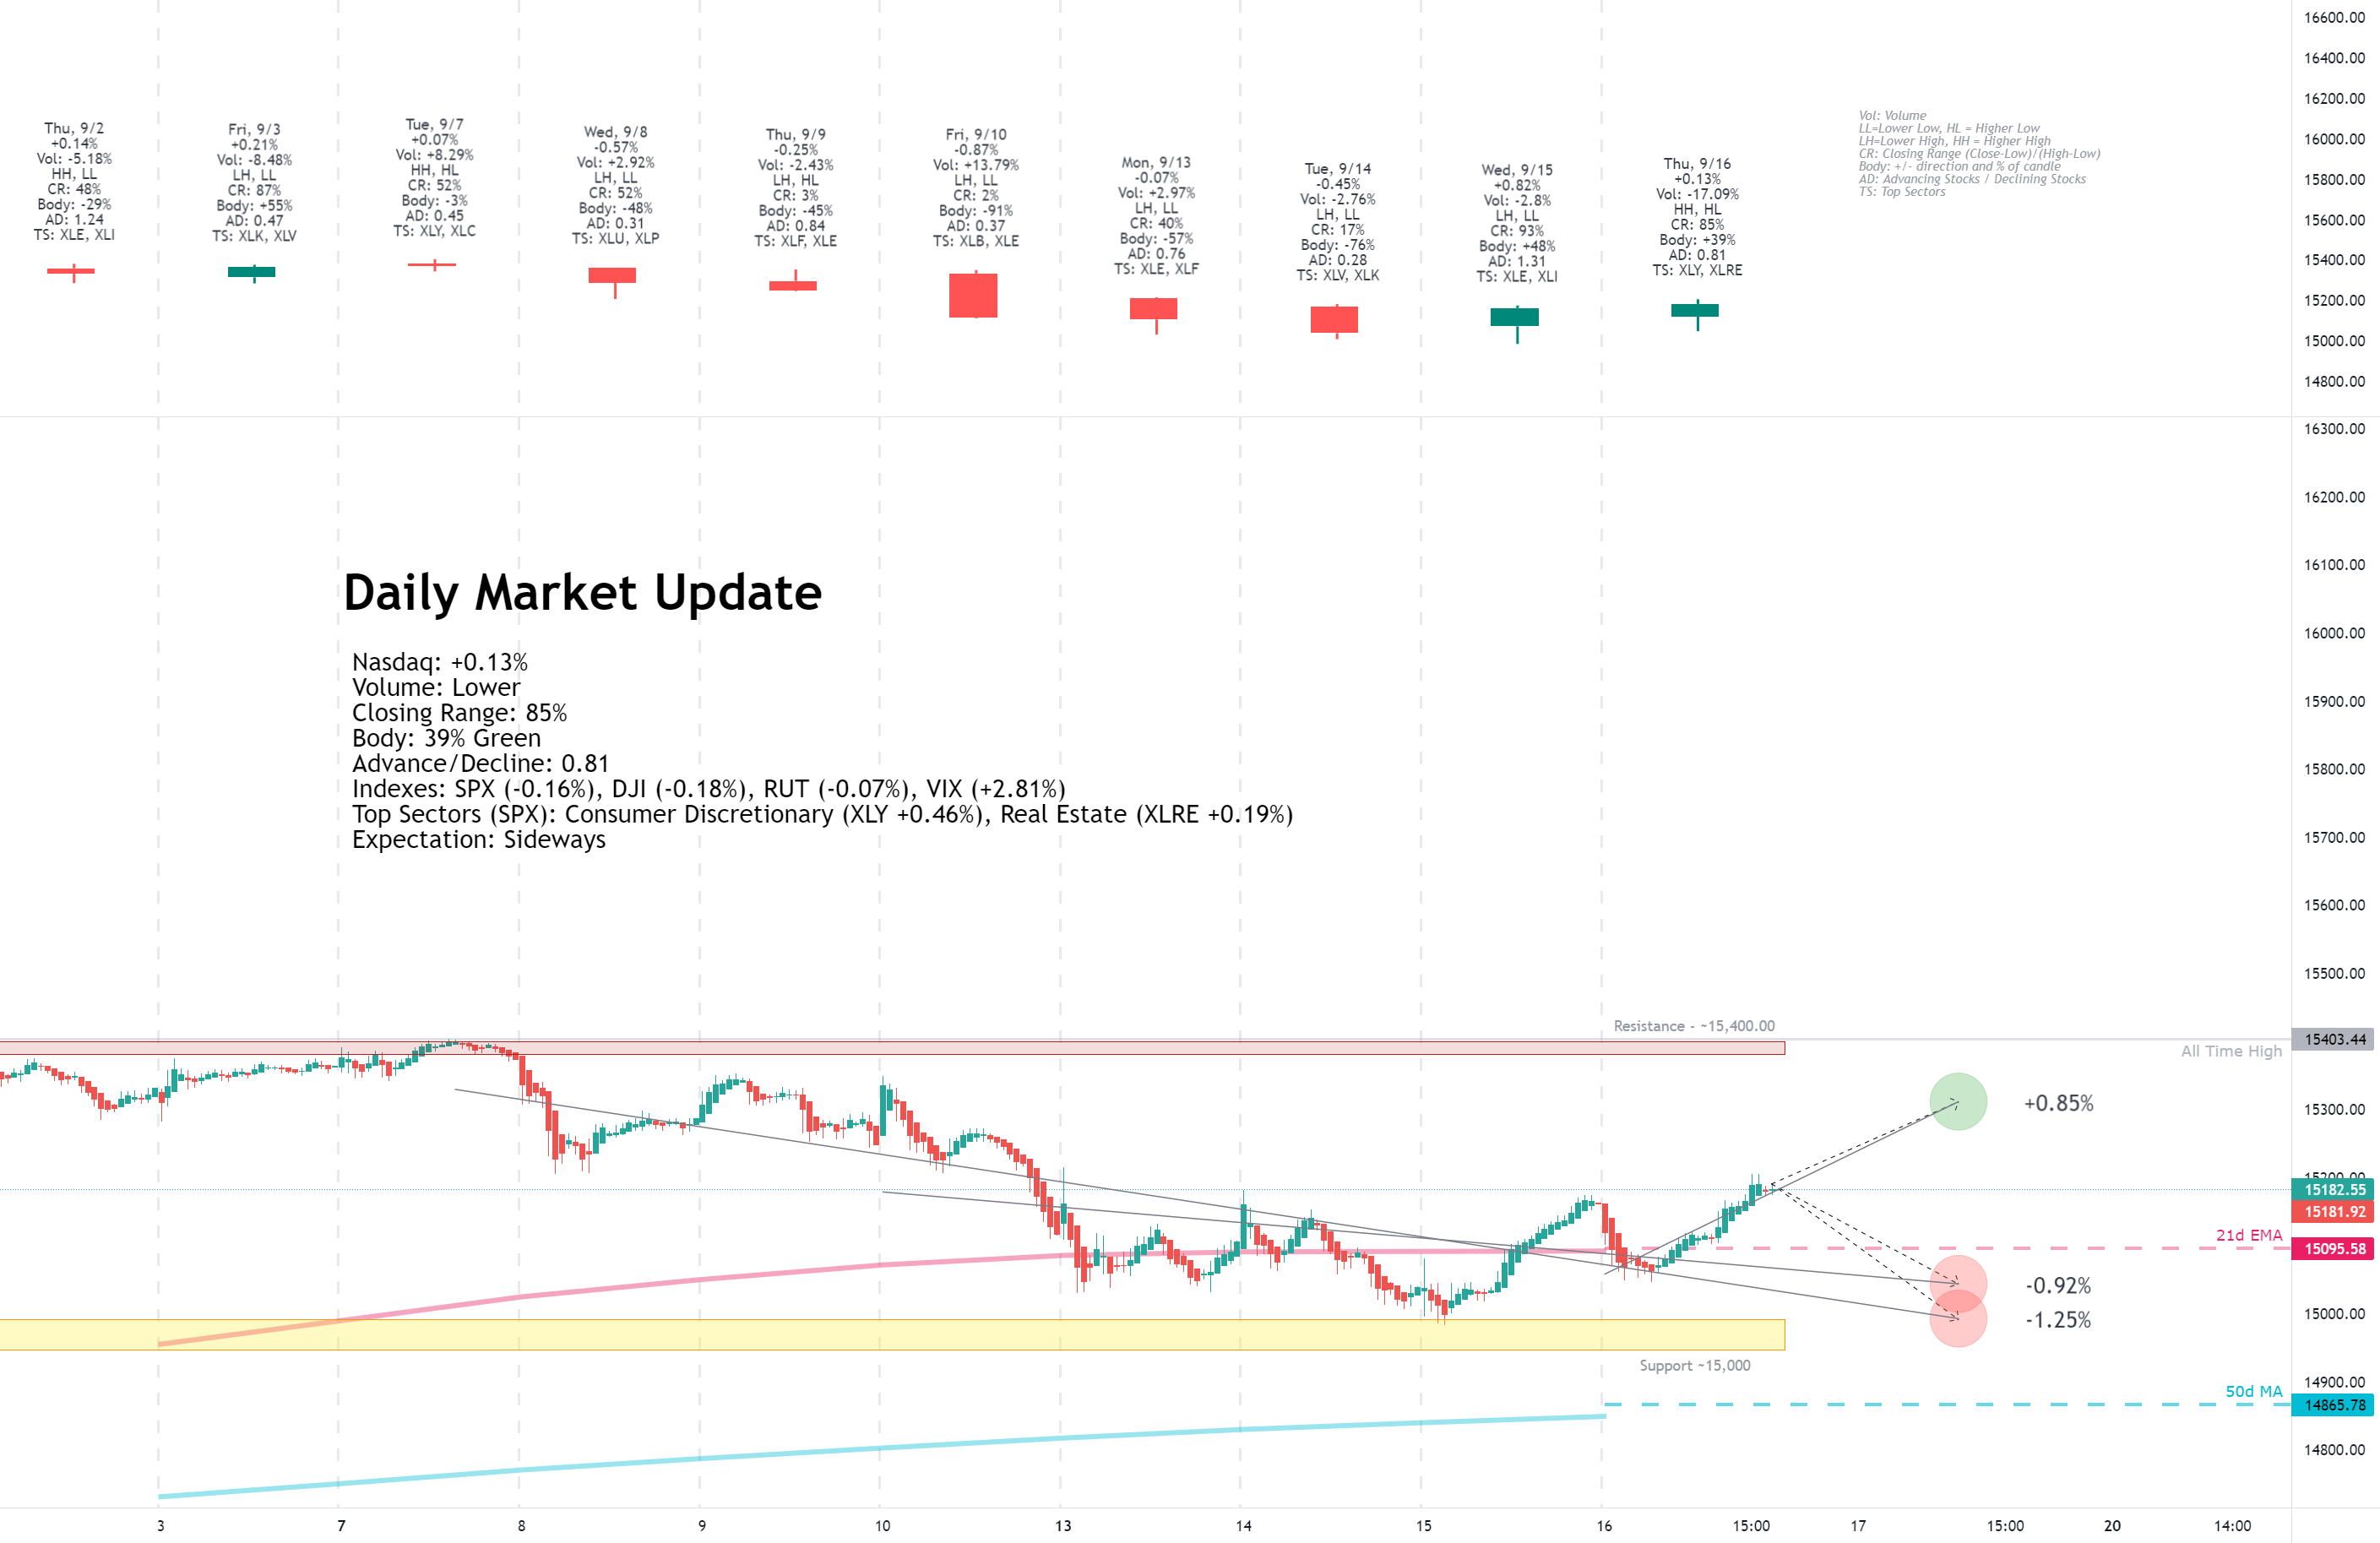 Daily Market Update for 9/16